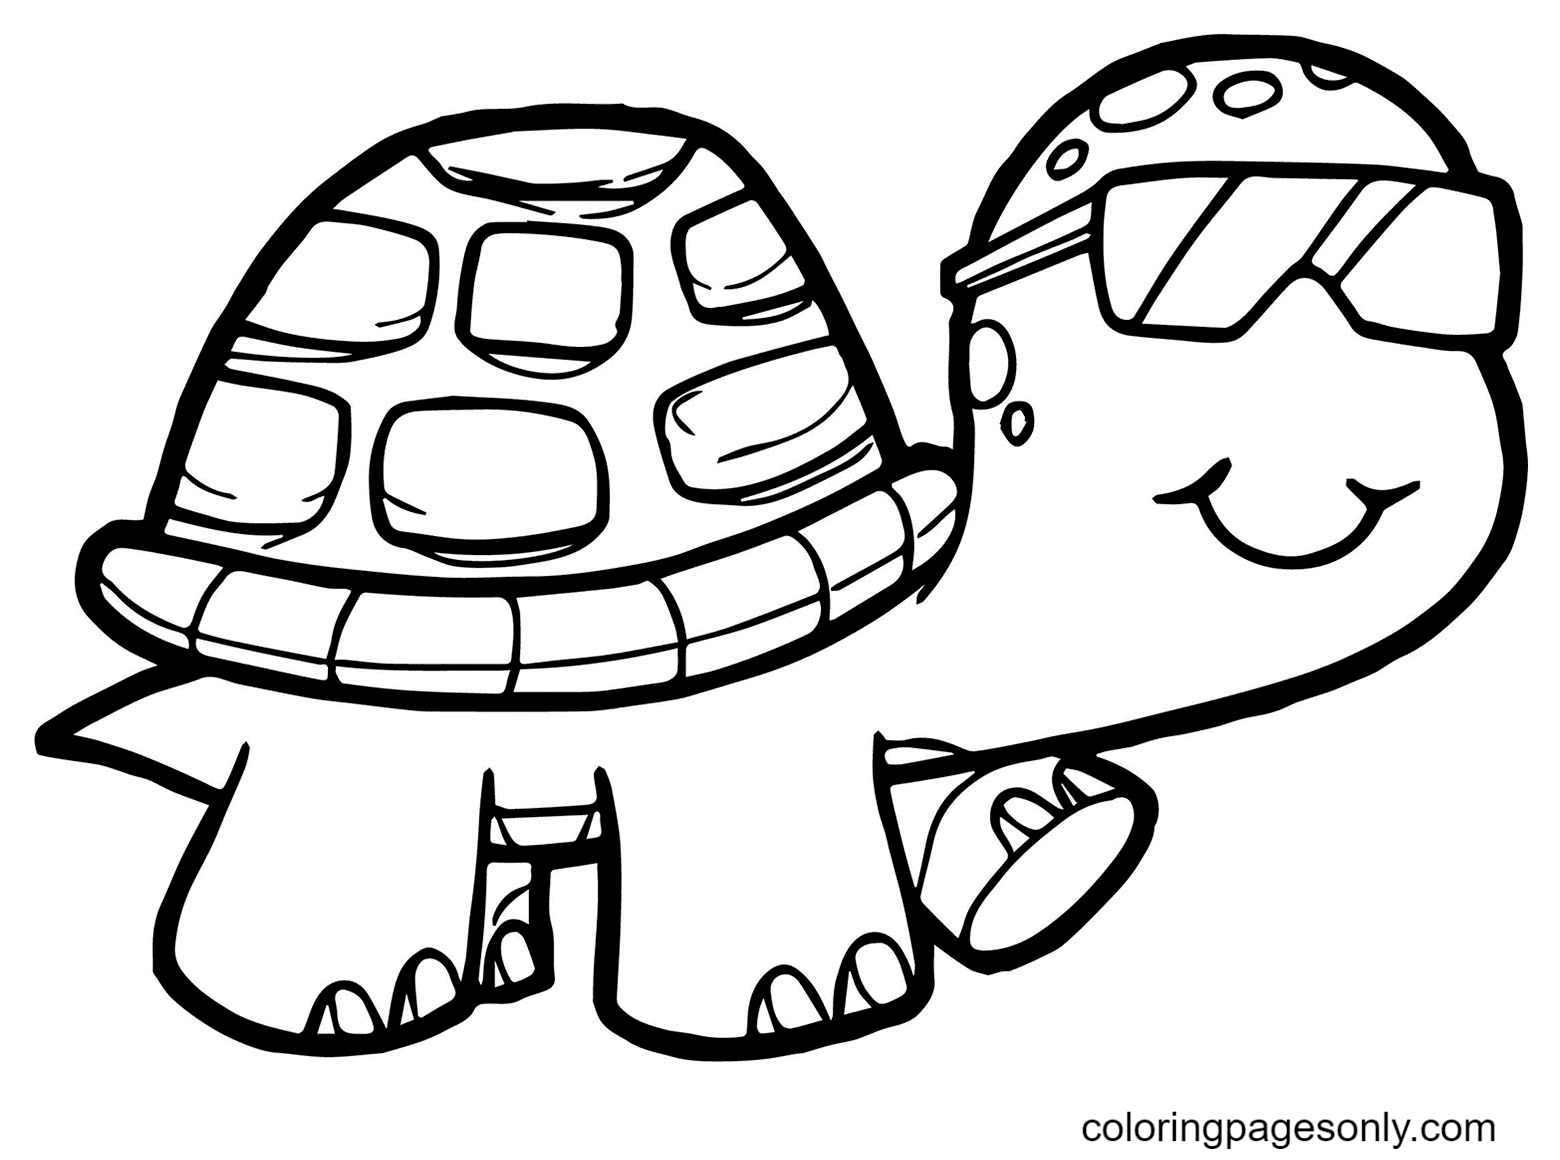 Turtle Wears Glasses Coloring Page